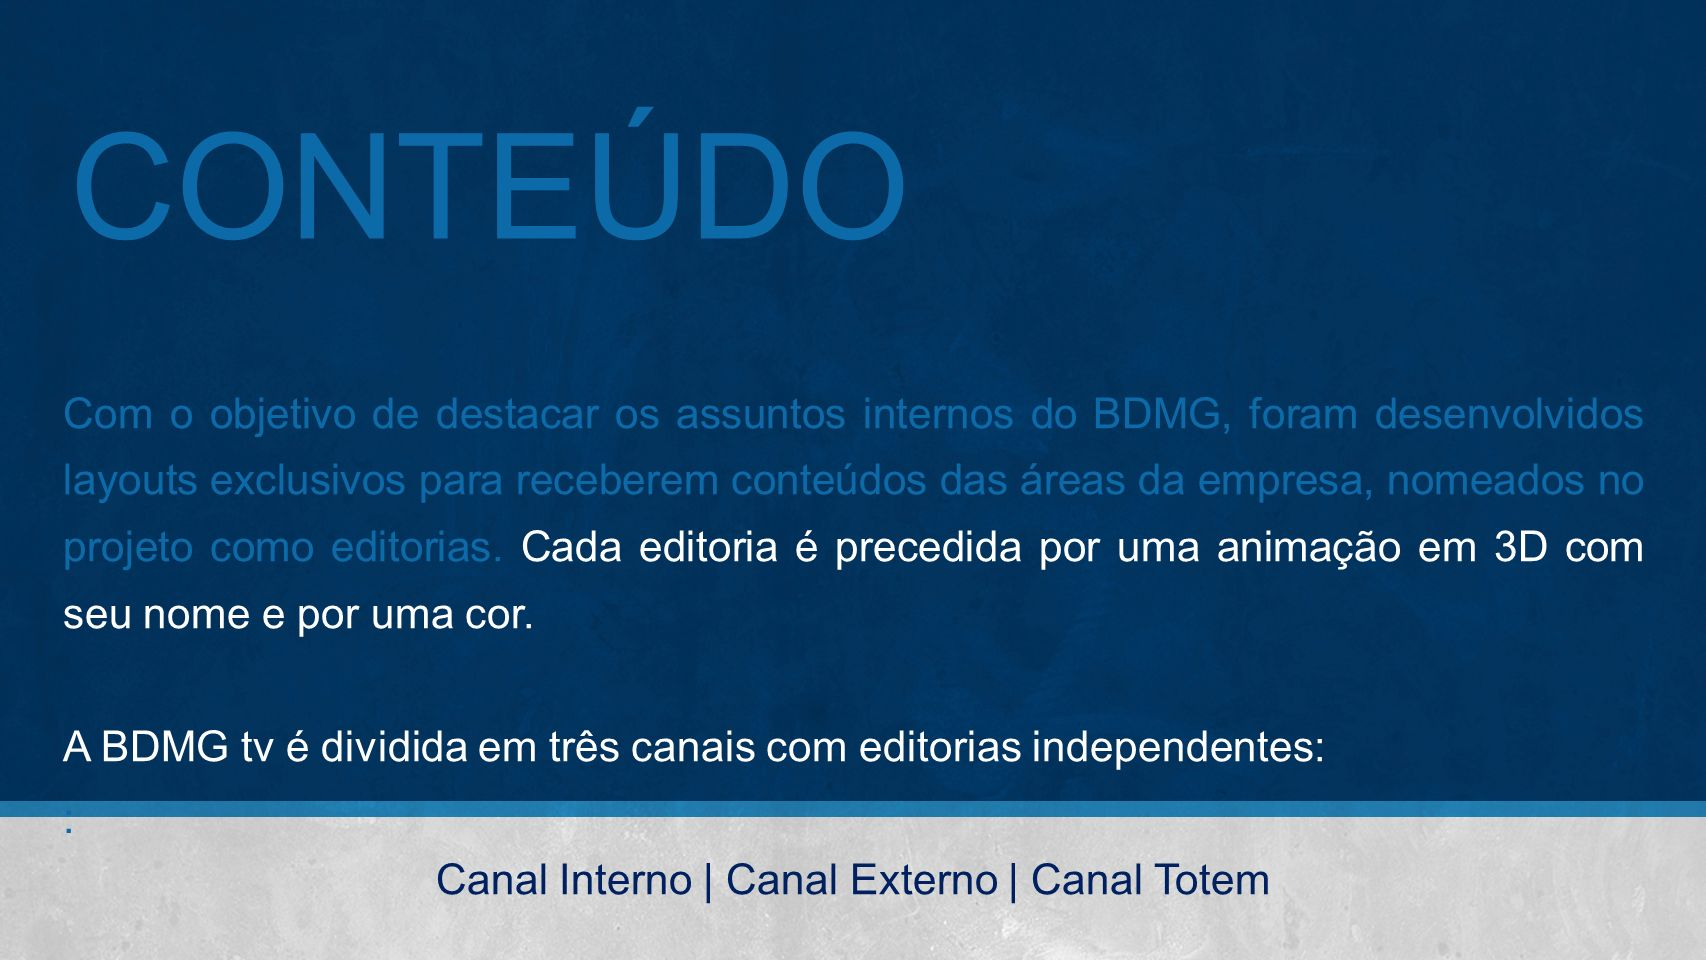 Canal Interno | Canal Externo | Canal Totem